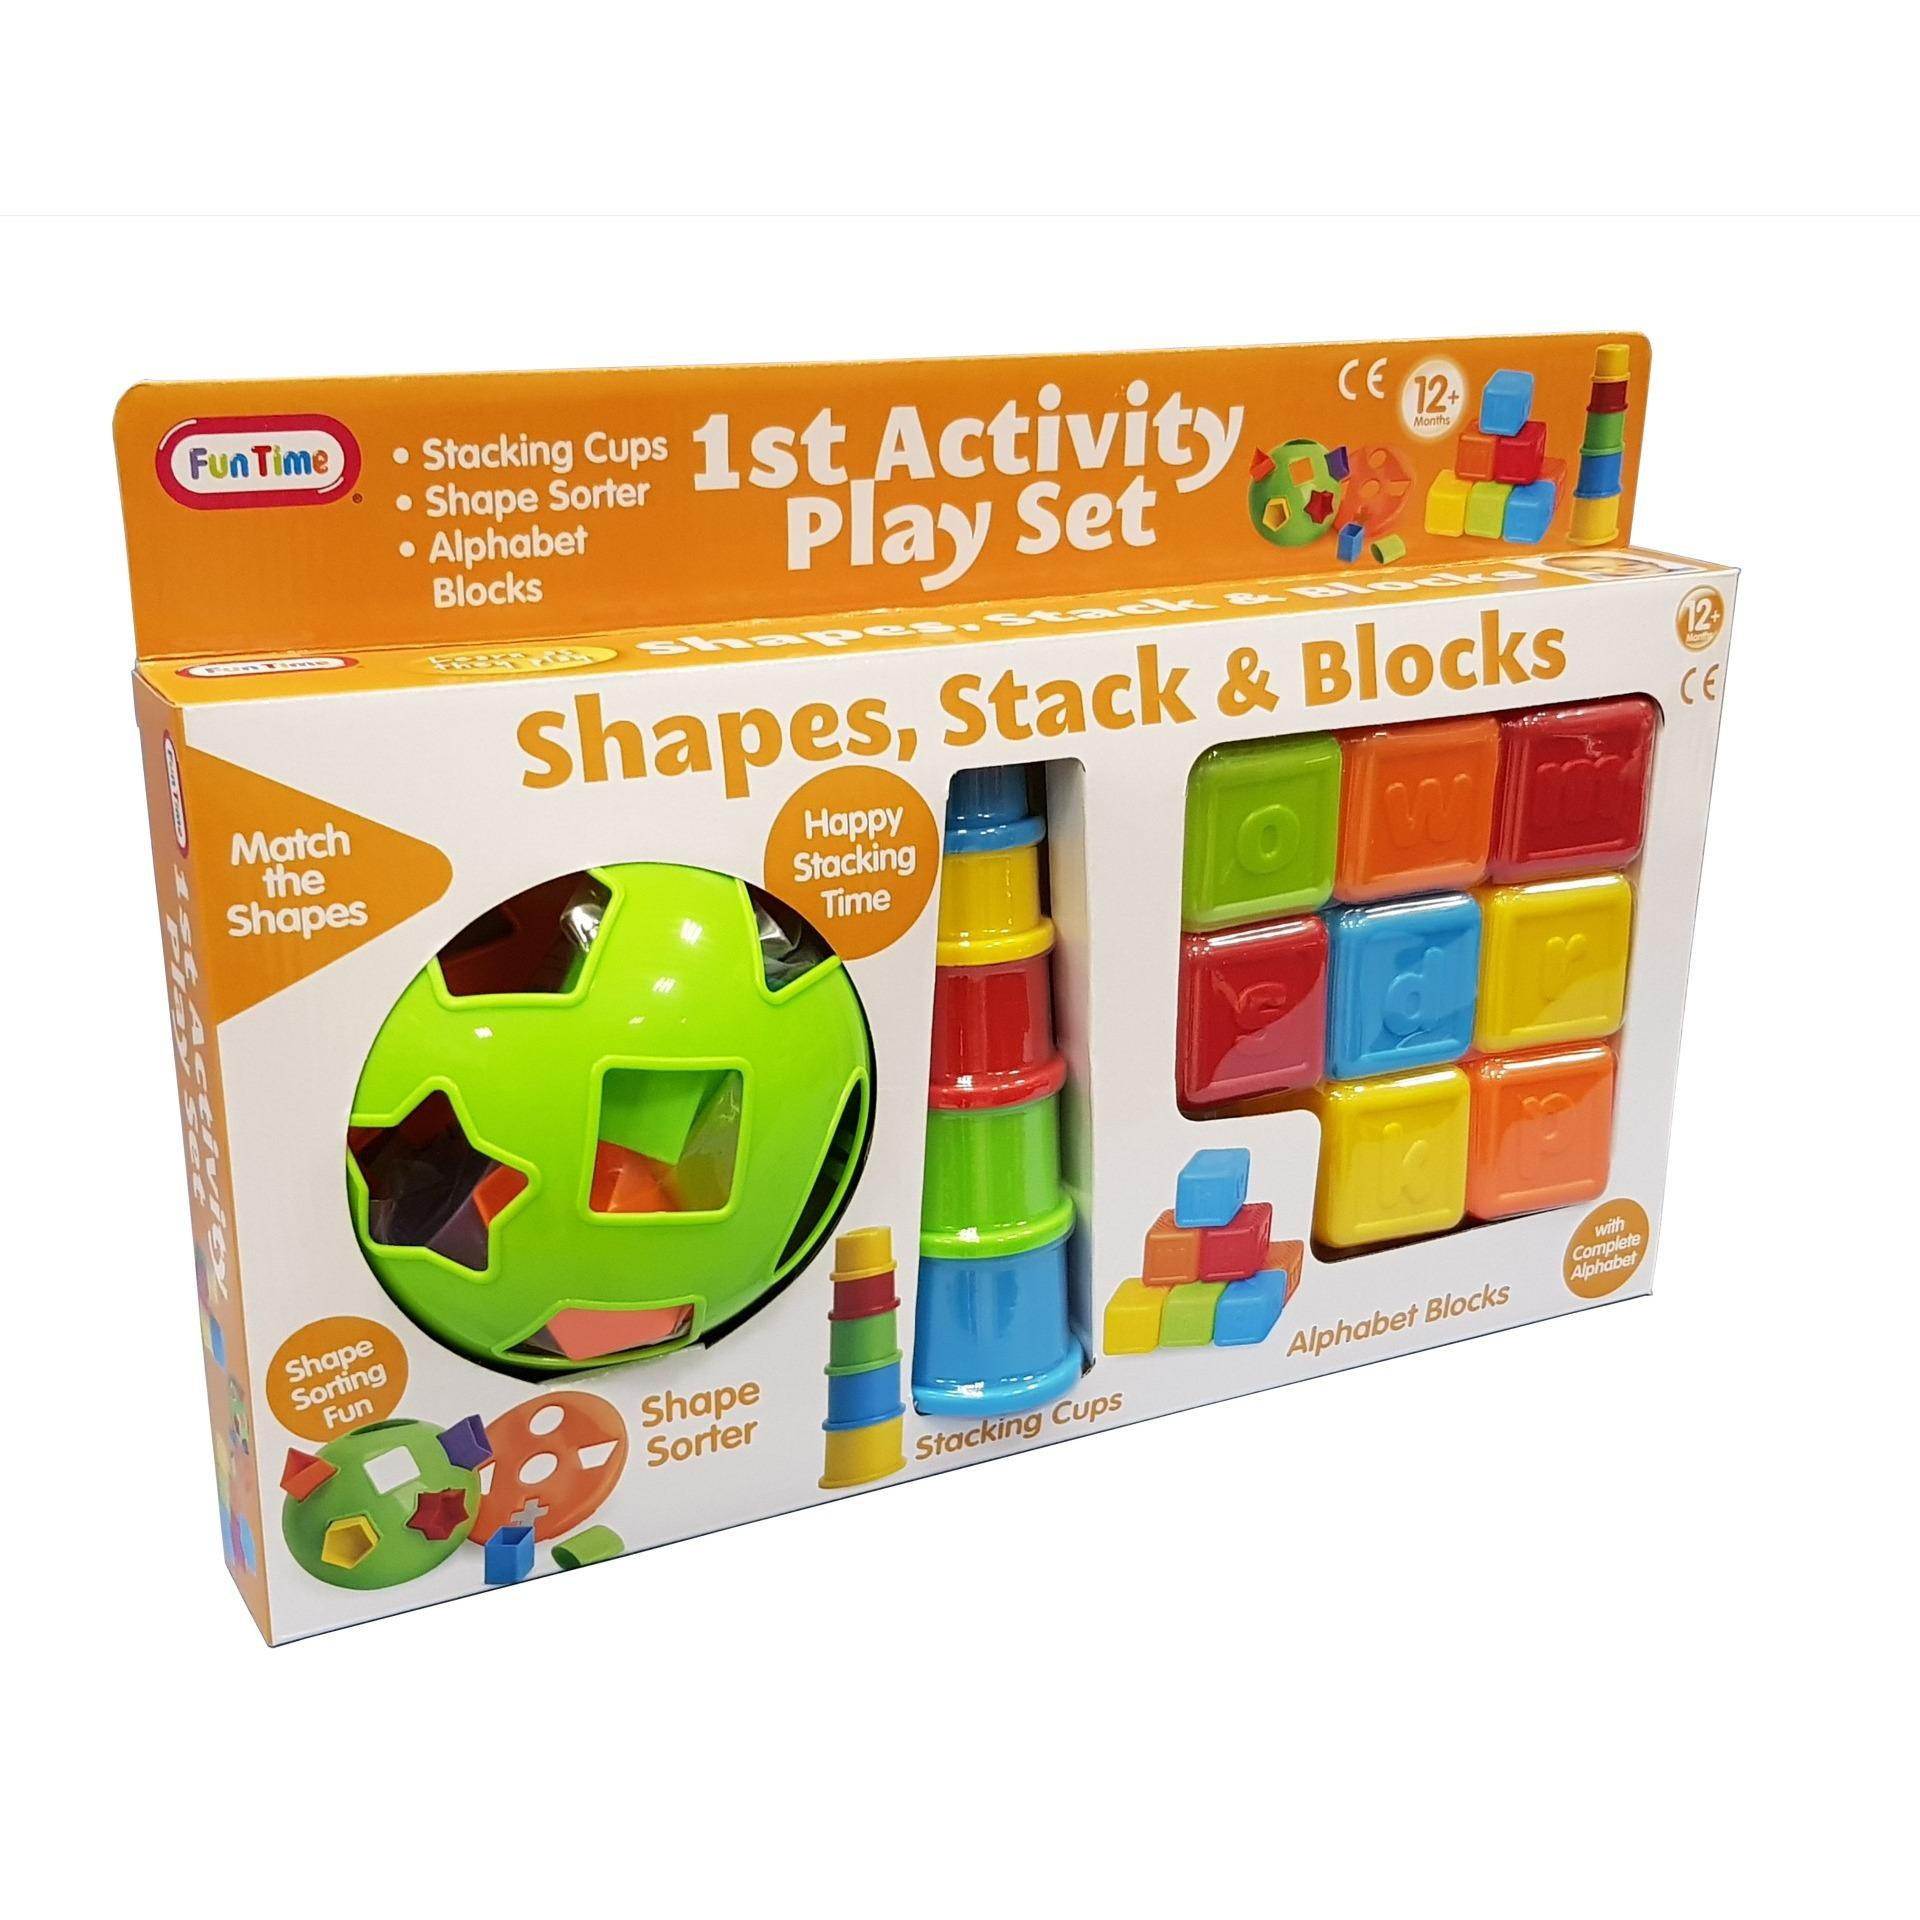 Funtime Shape Stack And Blocks Baby Toys By Lian Thye & Co Pte Ltd